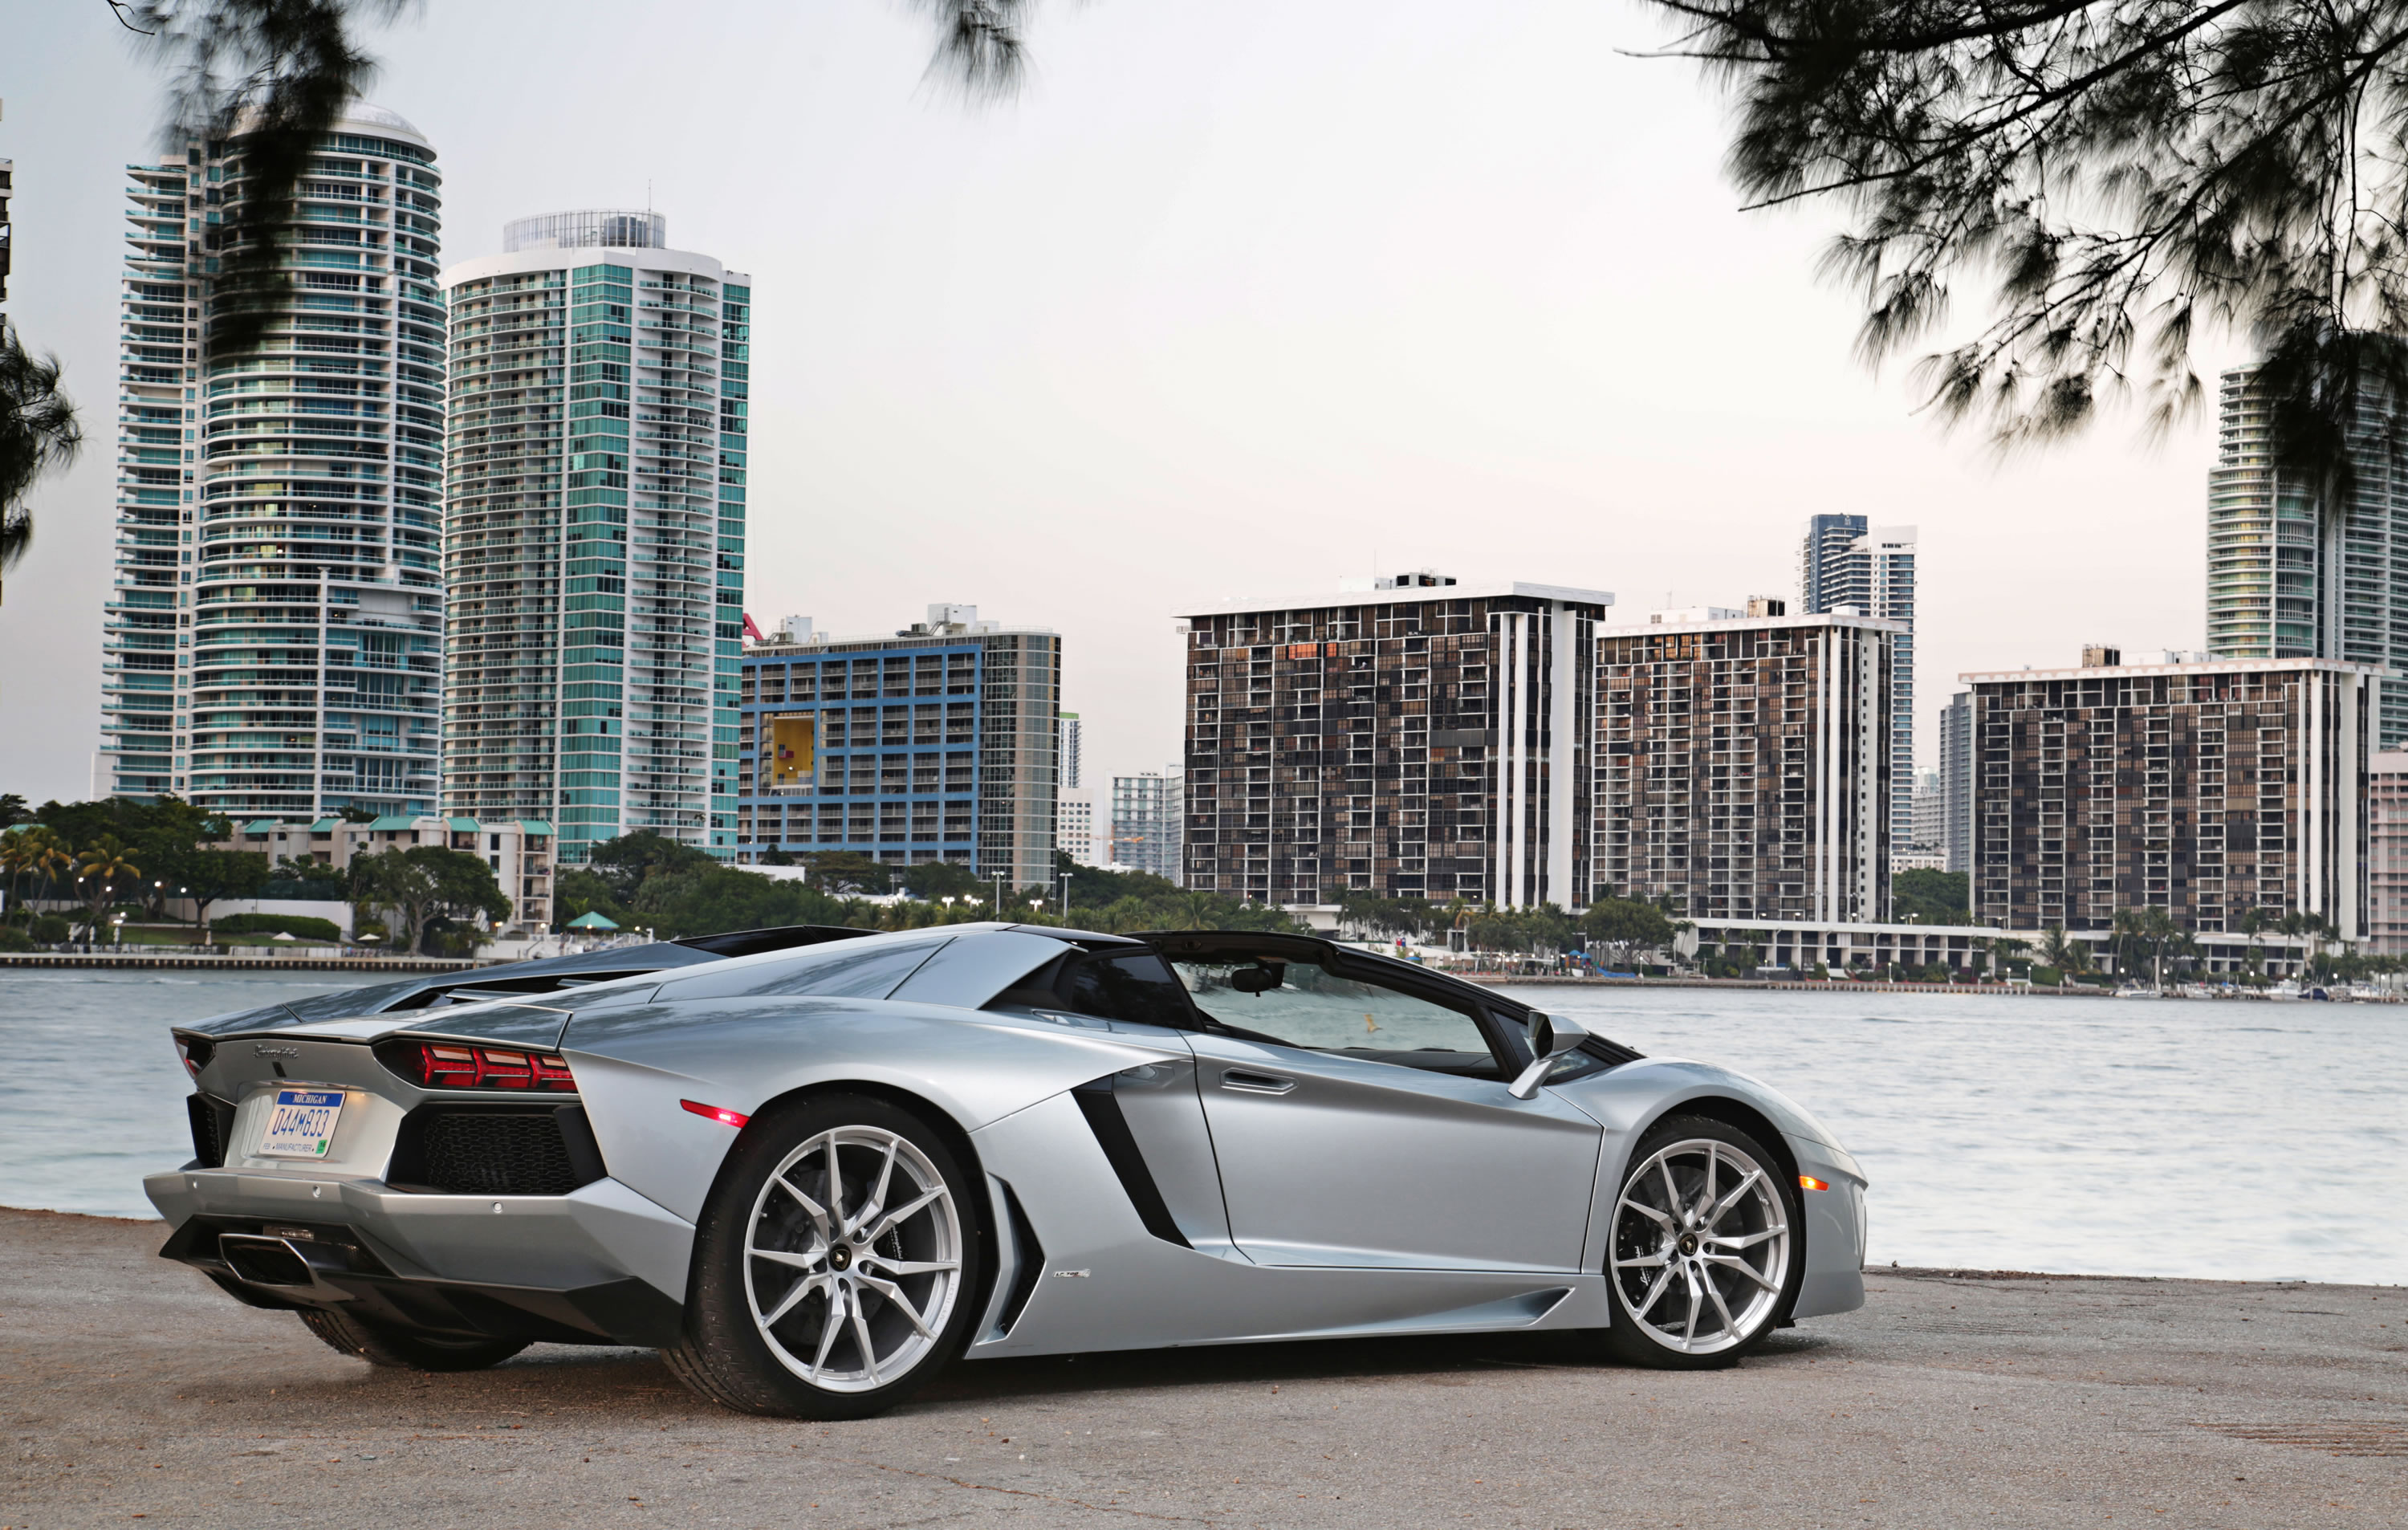 2014 Lamborghini Aventador Lp 700 4 Roadster Photos Specs And